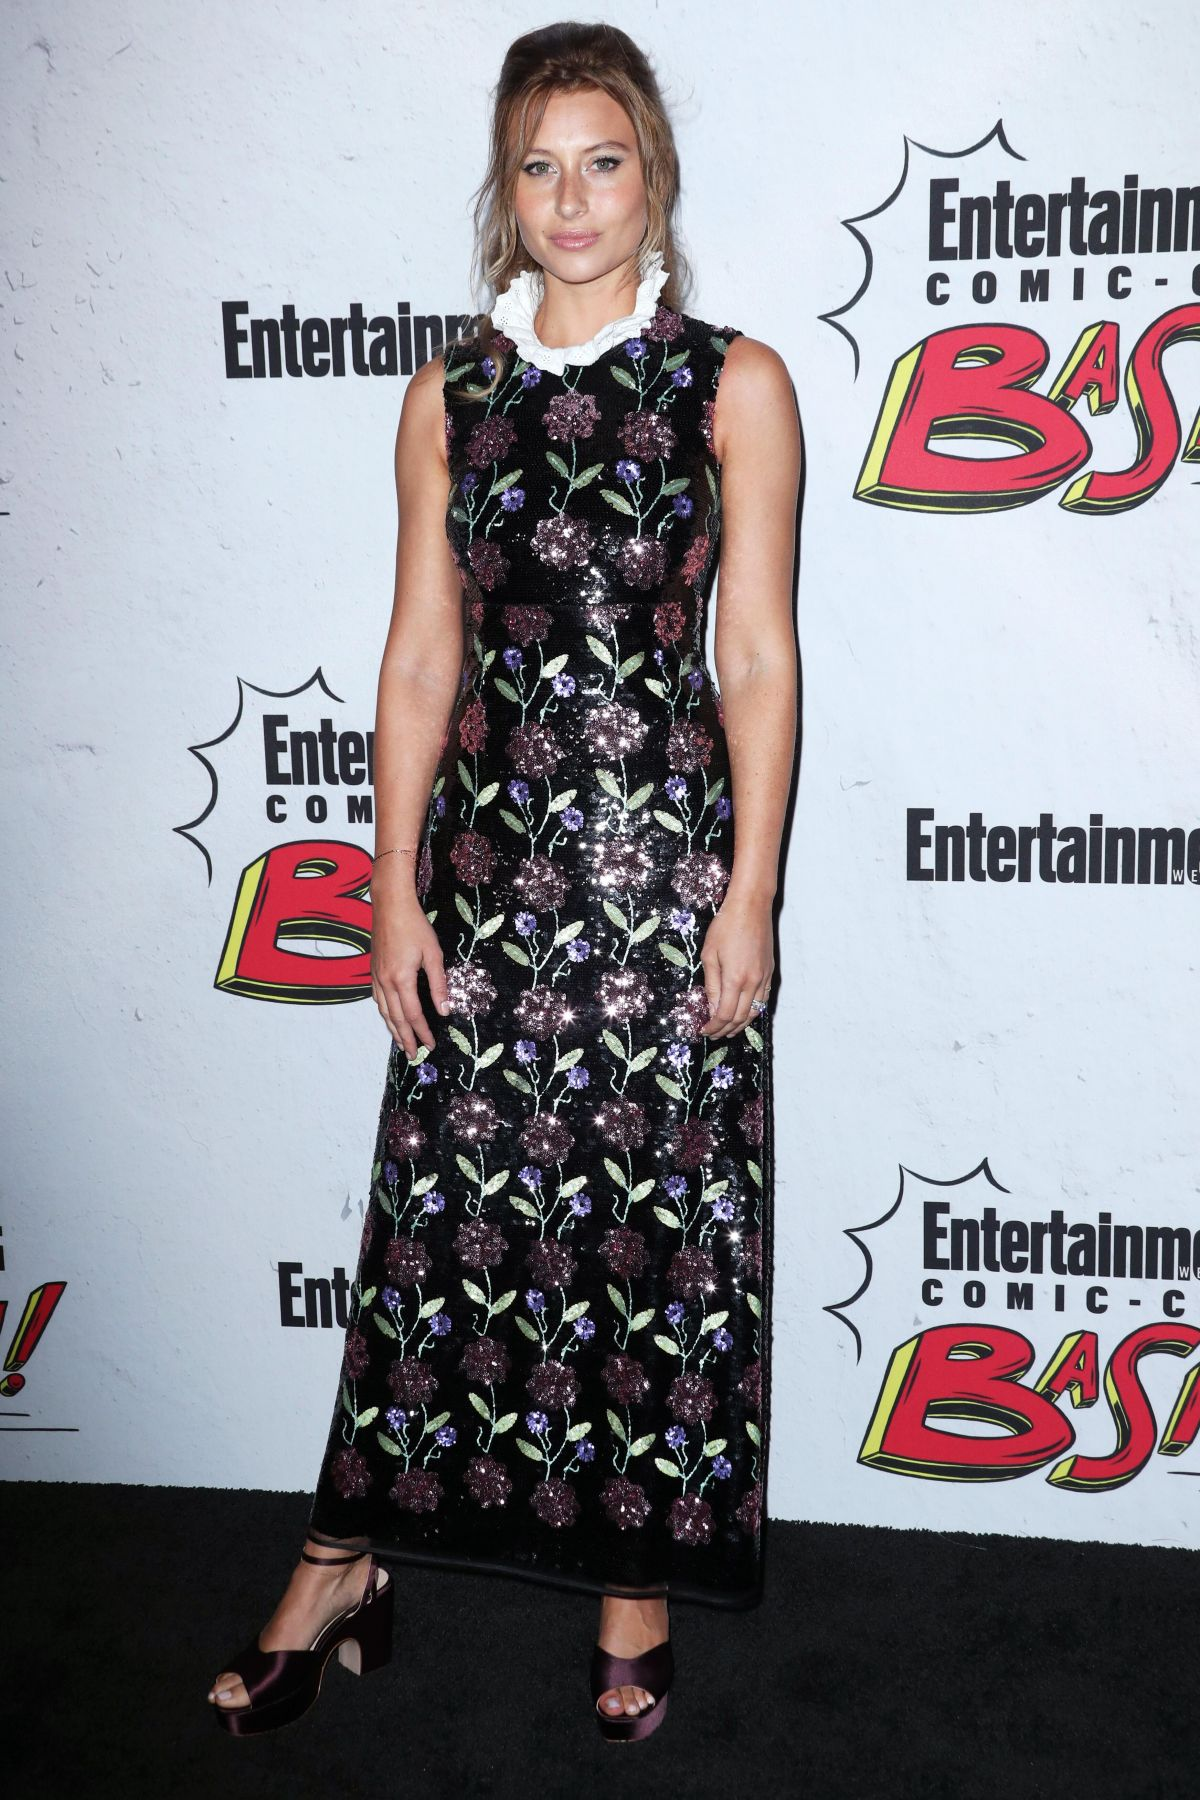 ALY MICHALKA at Entertainment Weekly's Comic-con Party in ...